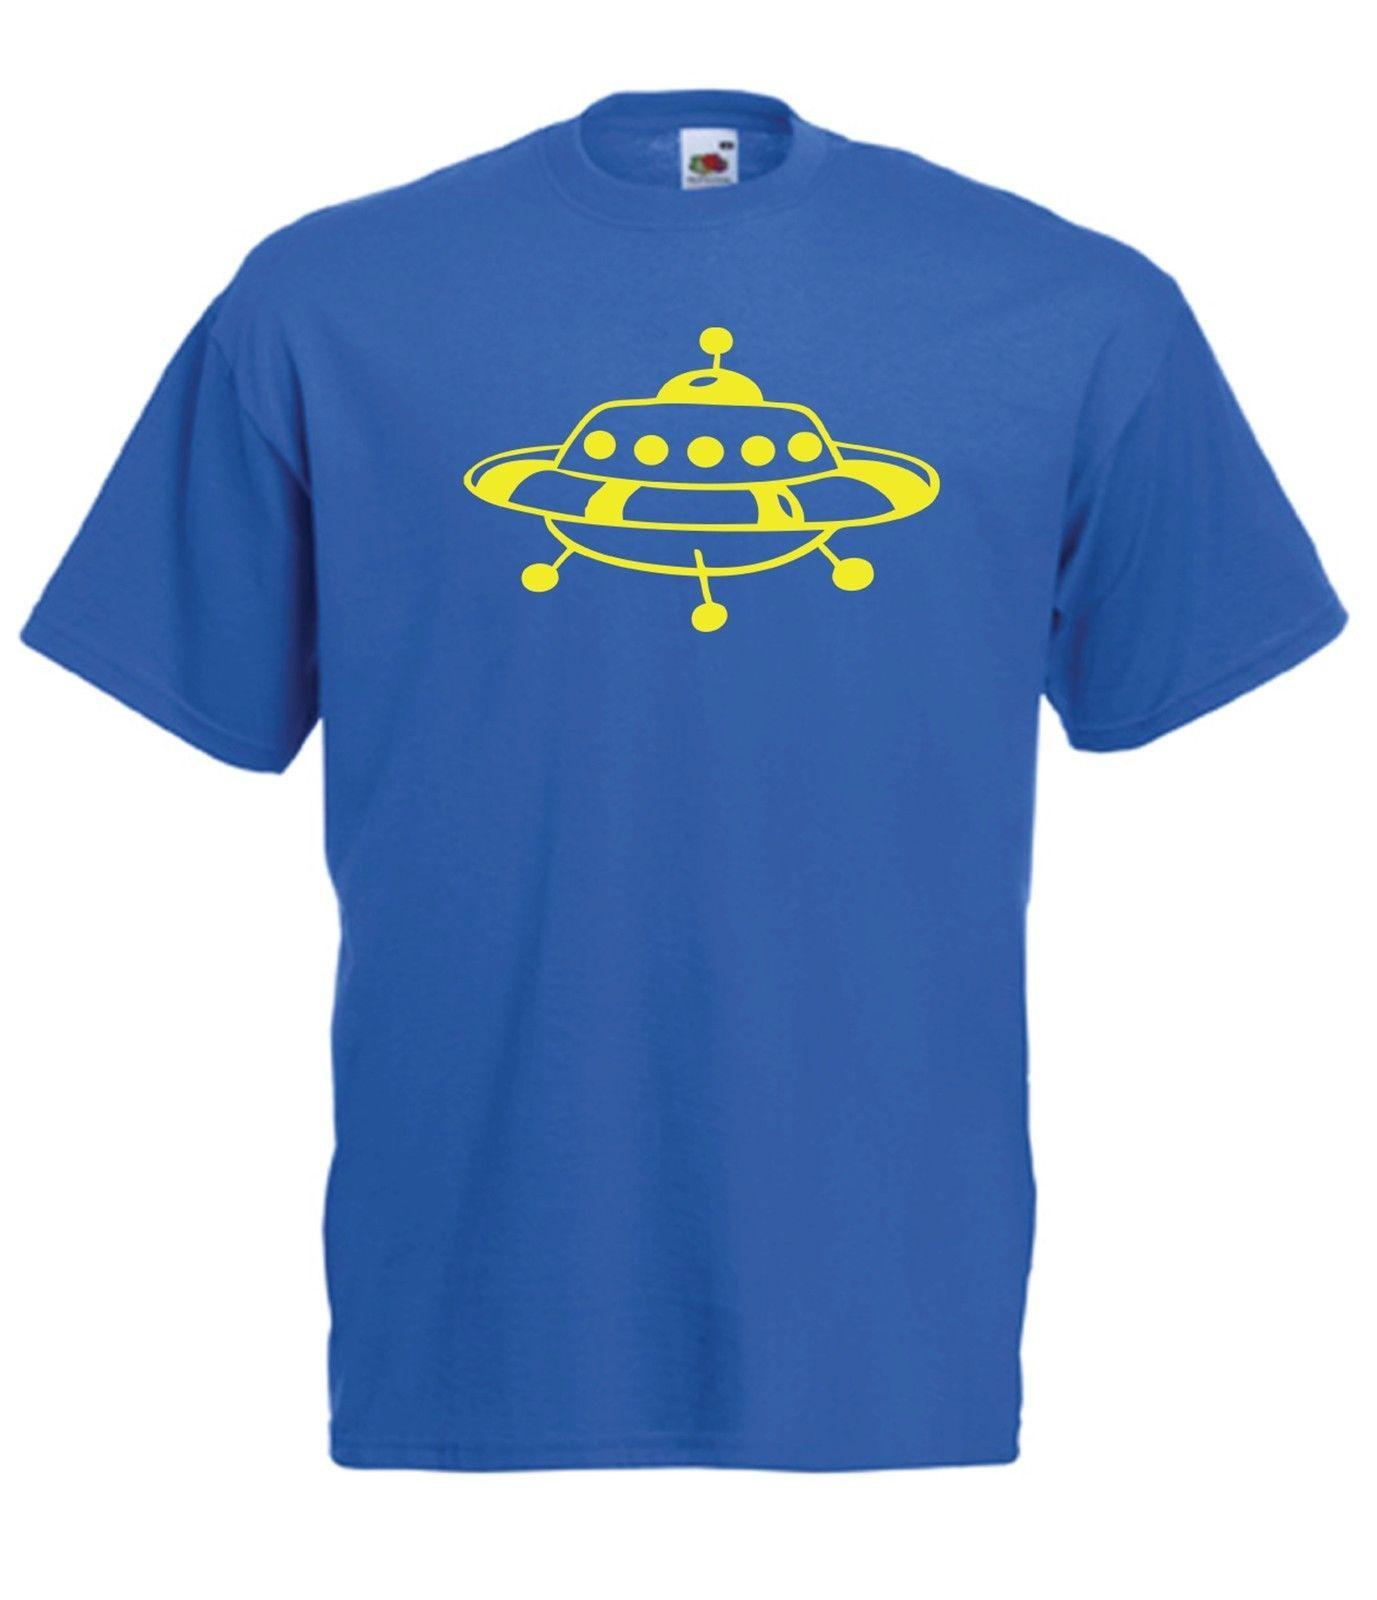 UFO ALIEN SPACE SHIP Funny Trek Top Xmas Birthday Gift Ideas Boys Girls T SHIRT Classic Quality High Shirt Design And Order Shirts Gag From